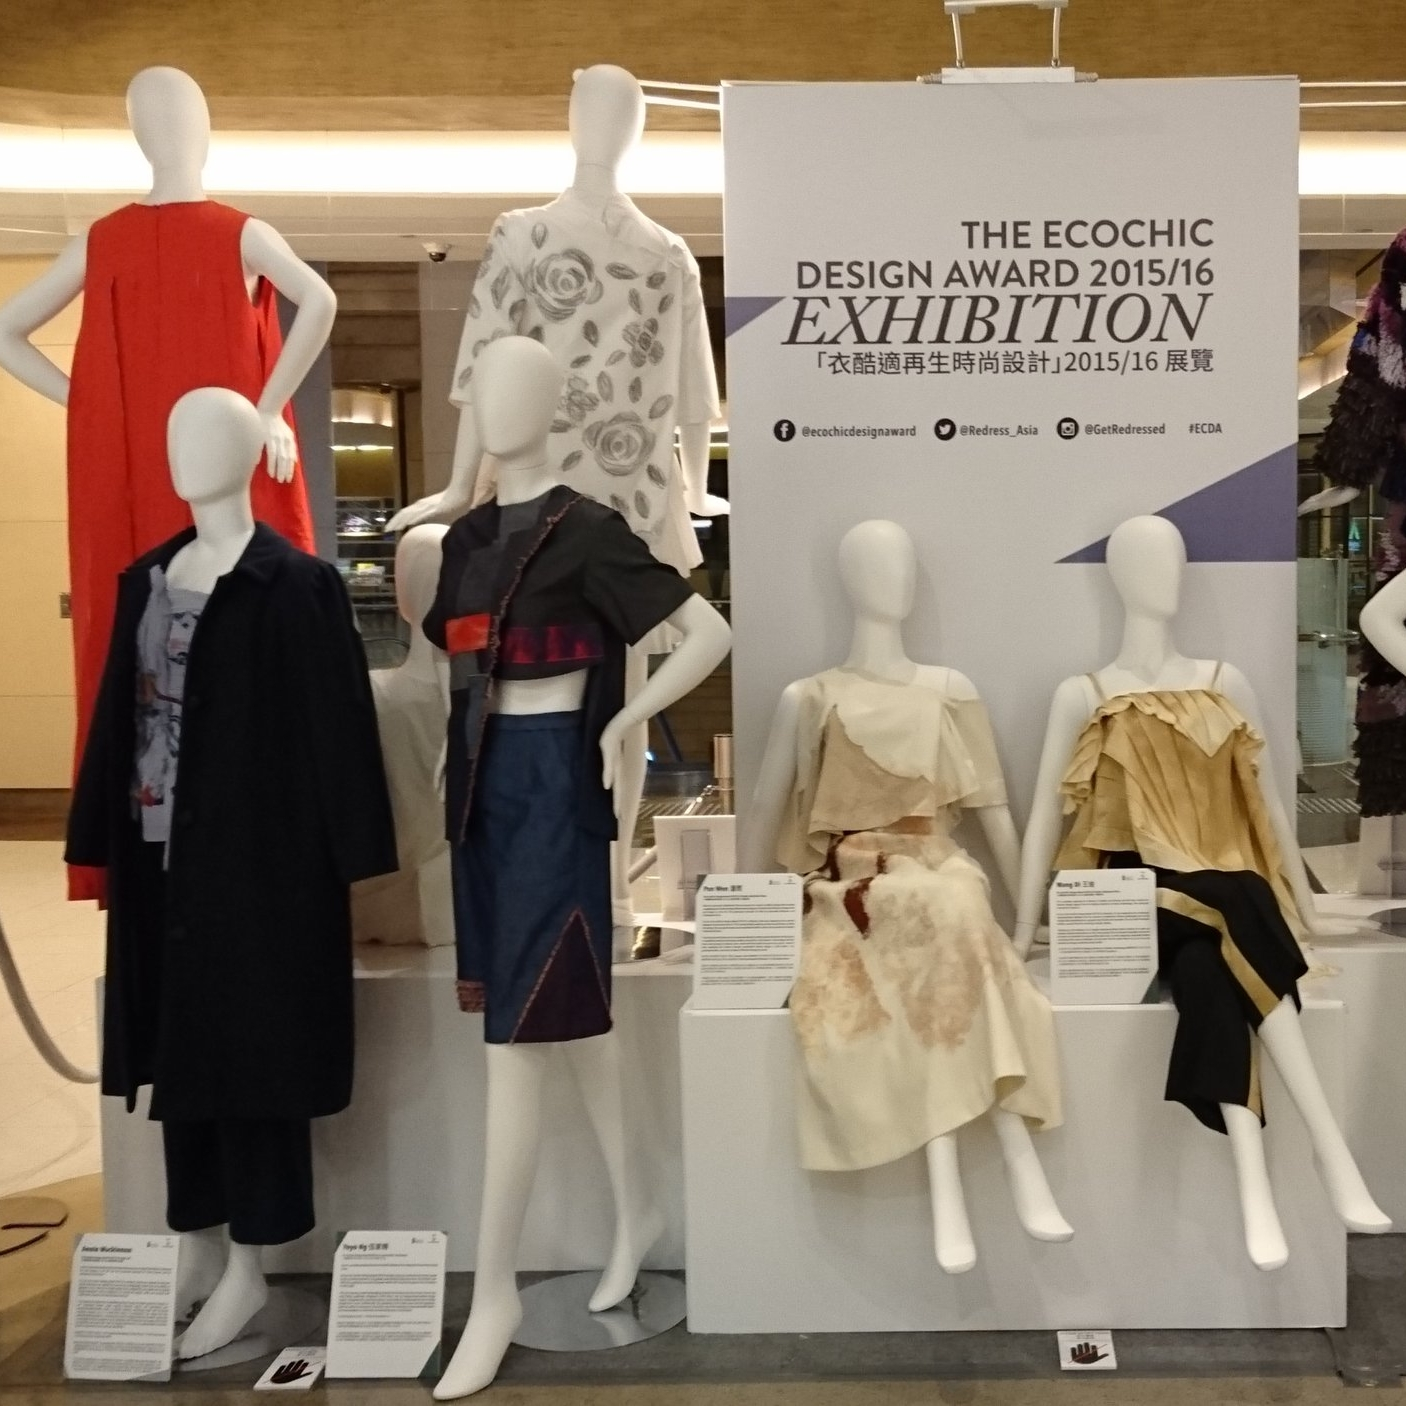 2015/16 Touring Exhibitions